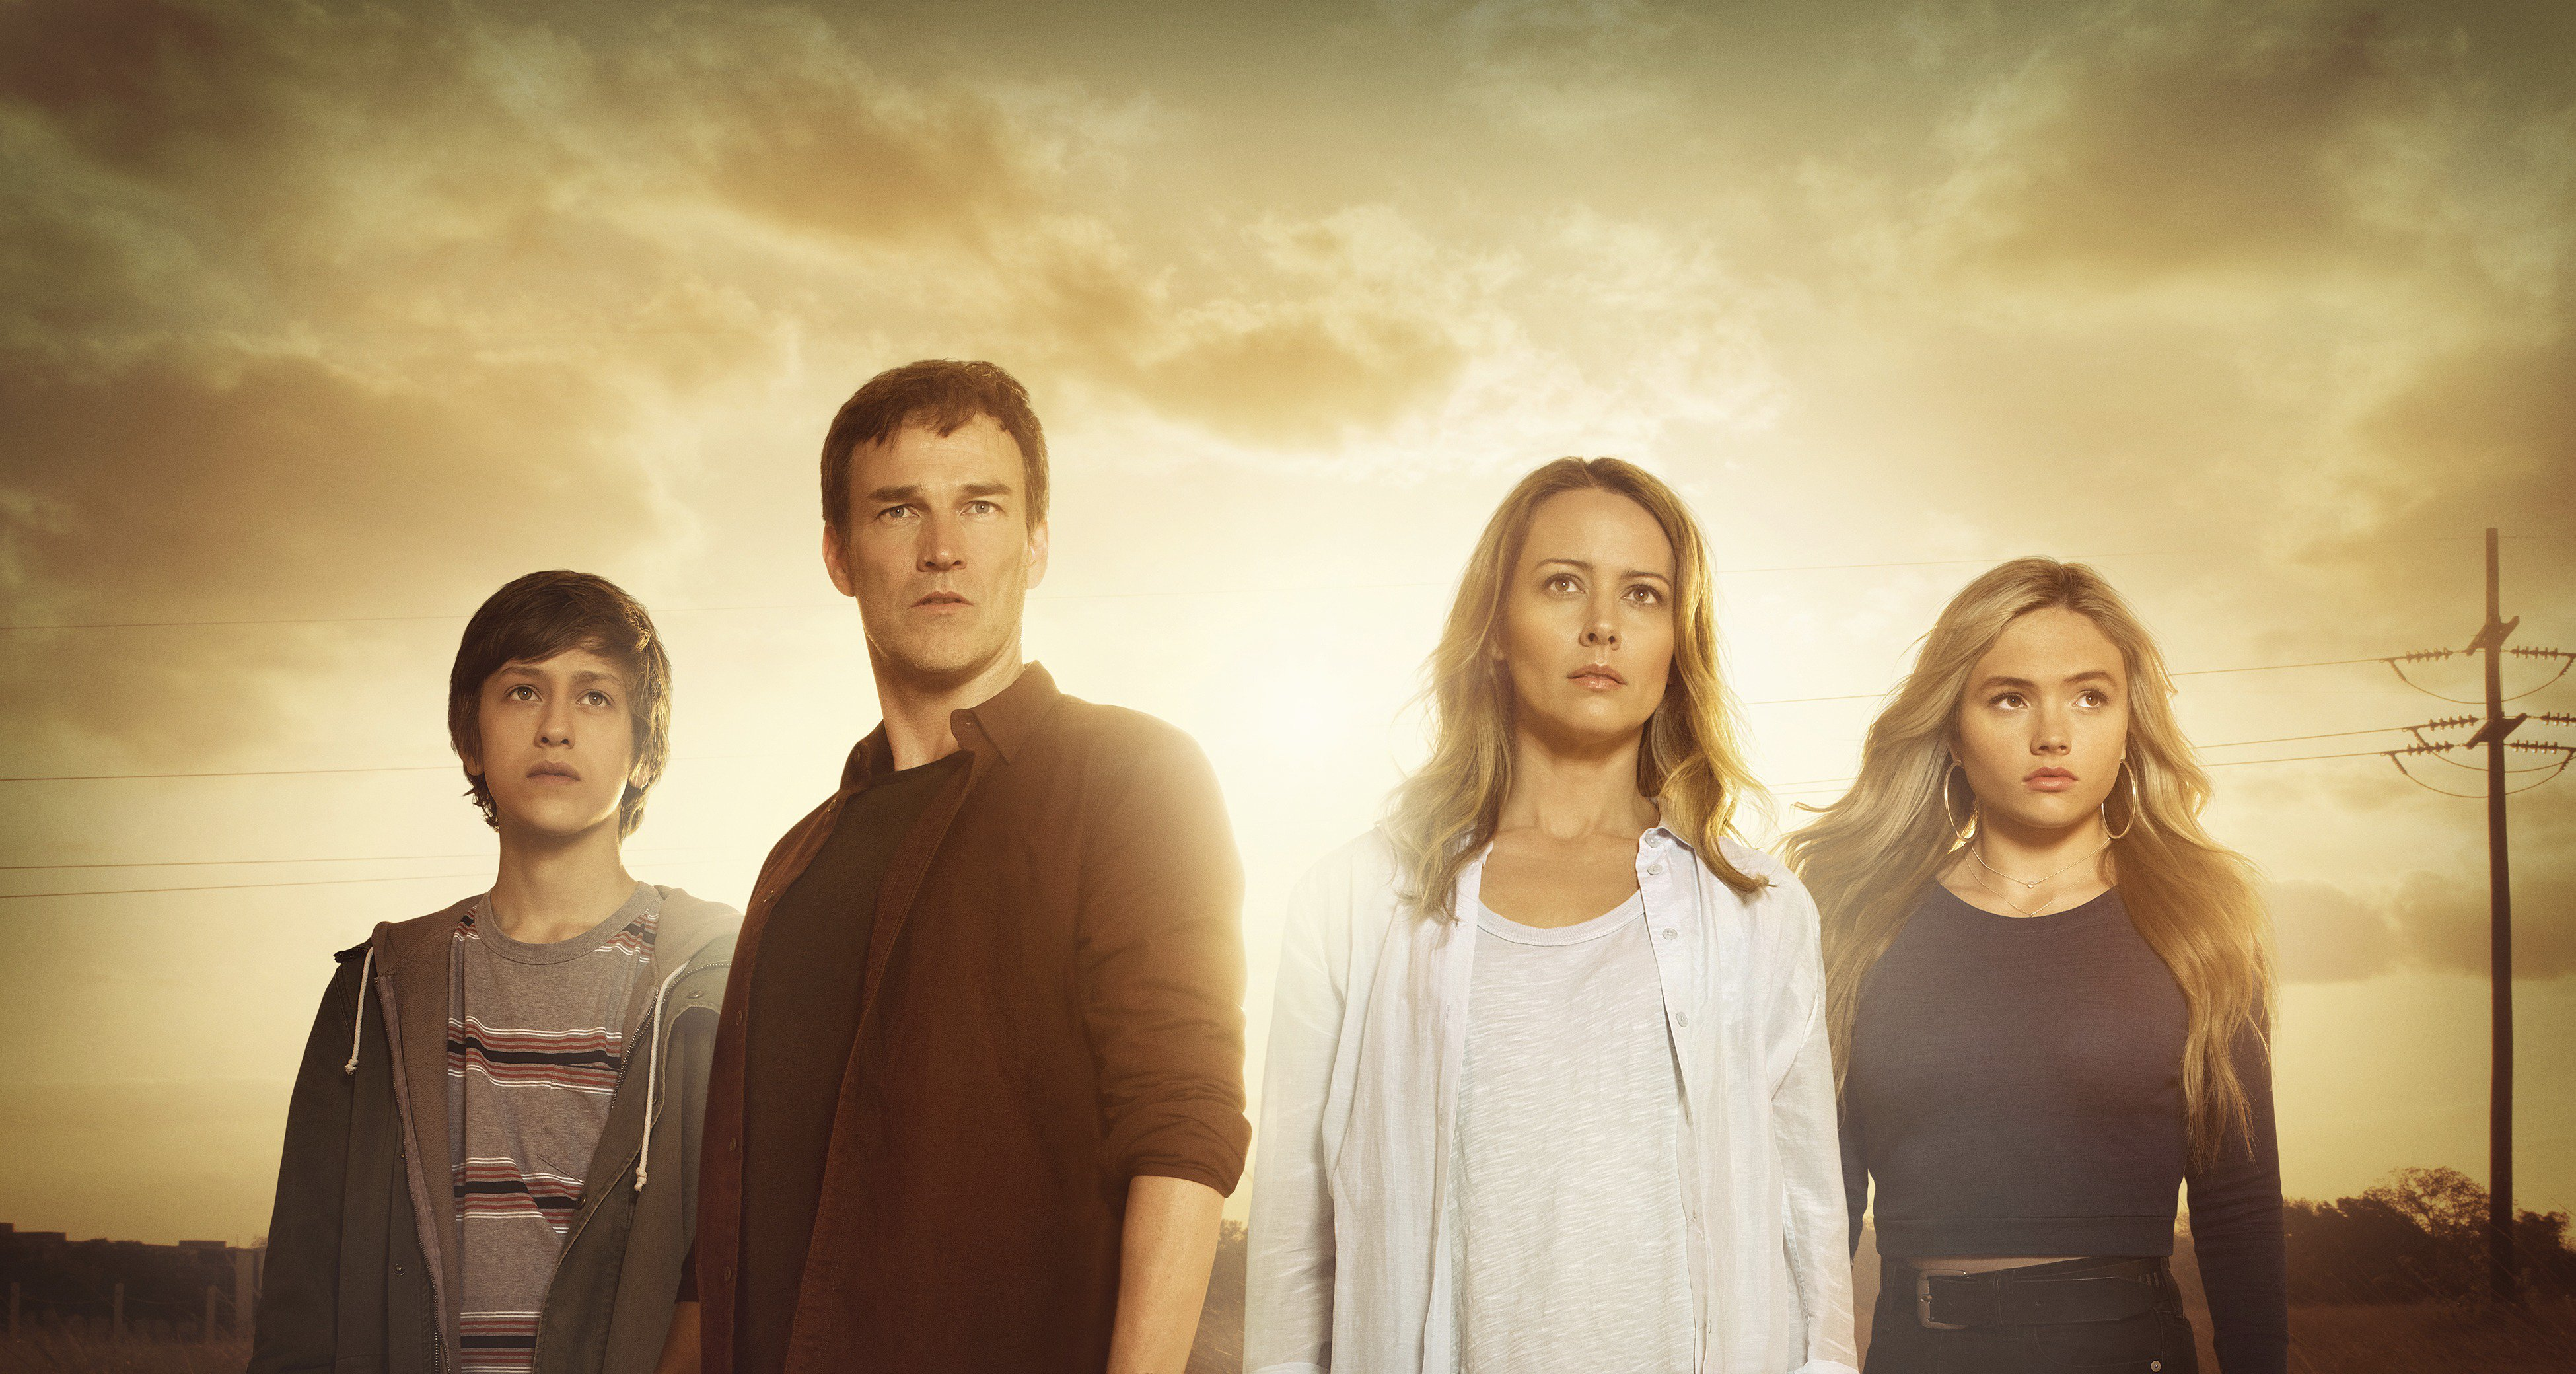 Action Adventure Family Drama THE GIFTED From Marvel Tells The Story Of A Suburban Couple Whose Ordinary Lives Are Rocked By Sudden Discovery That